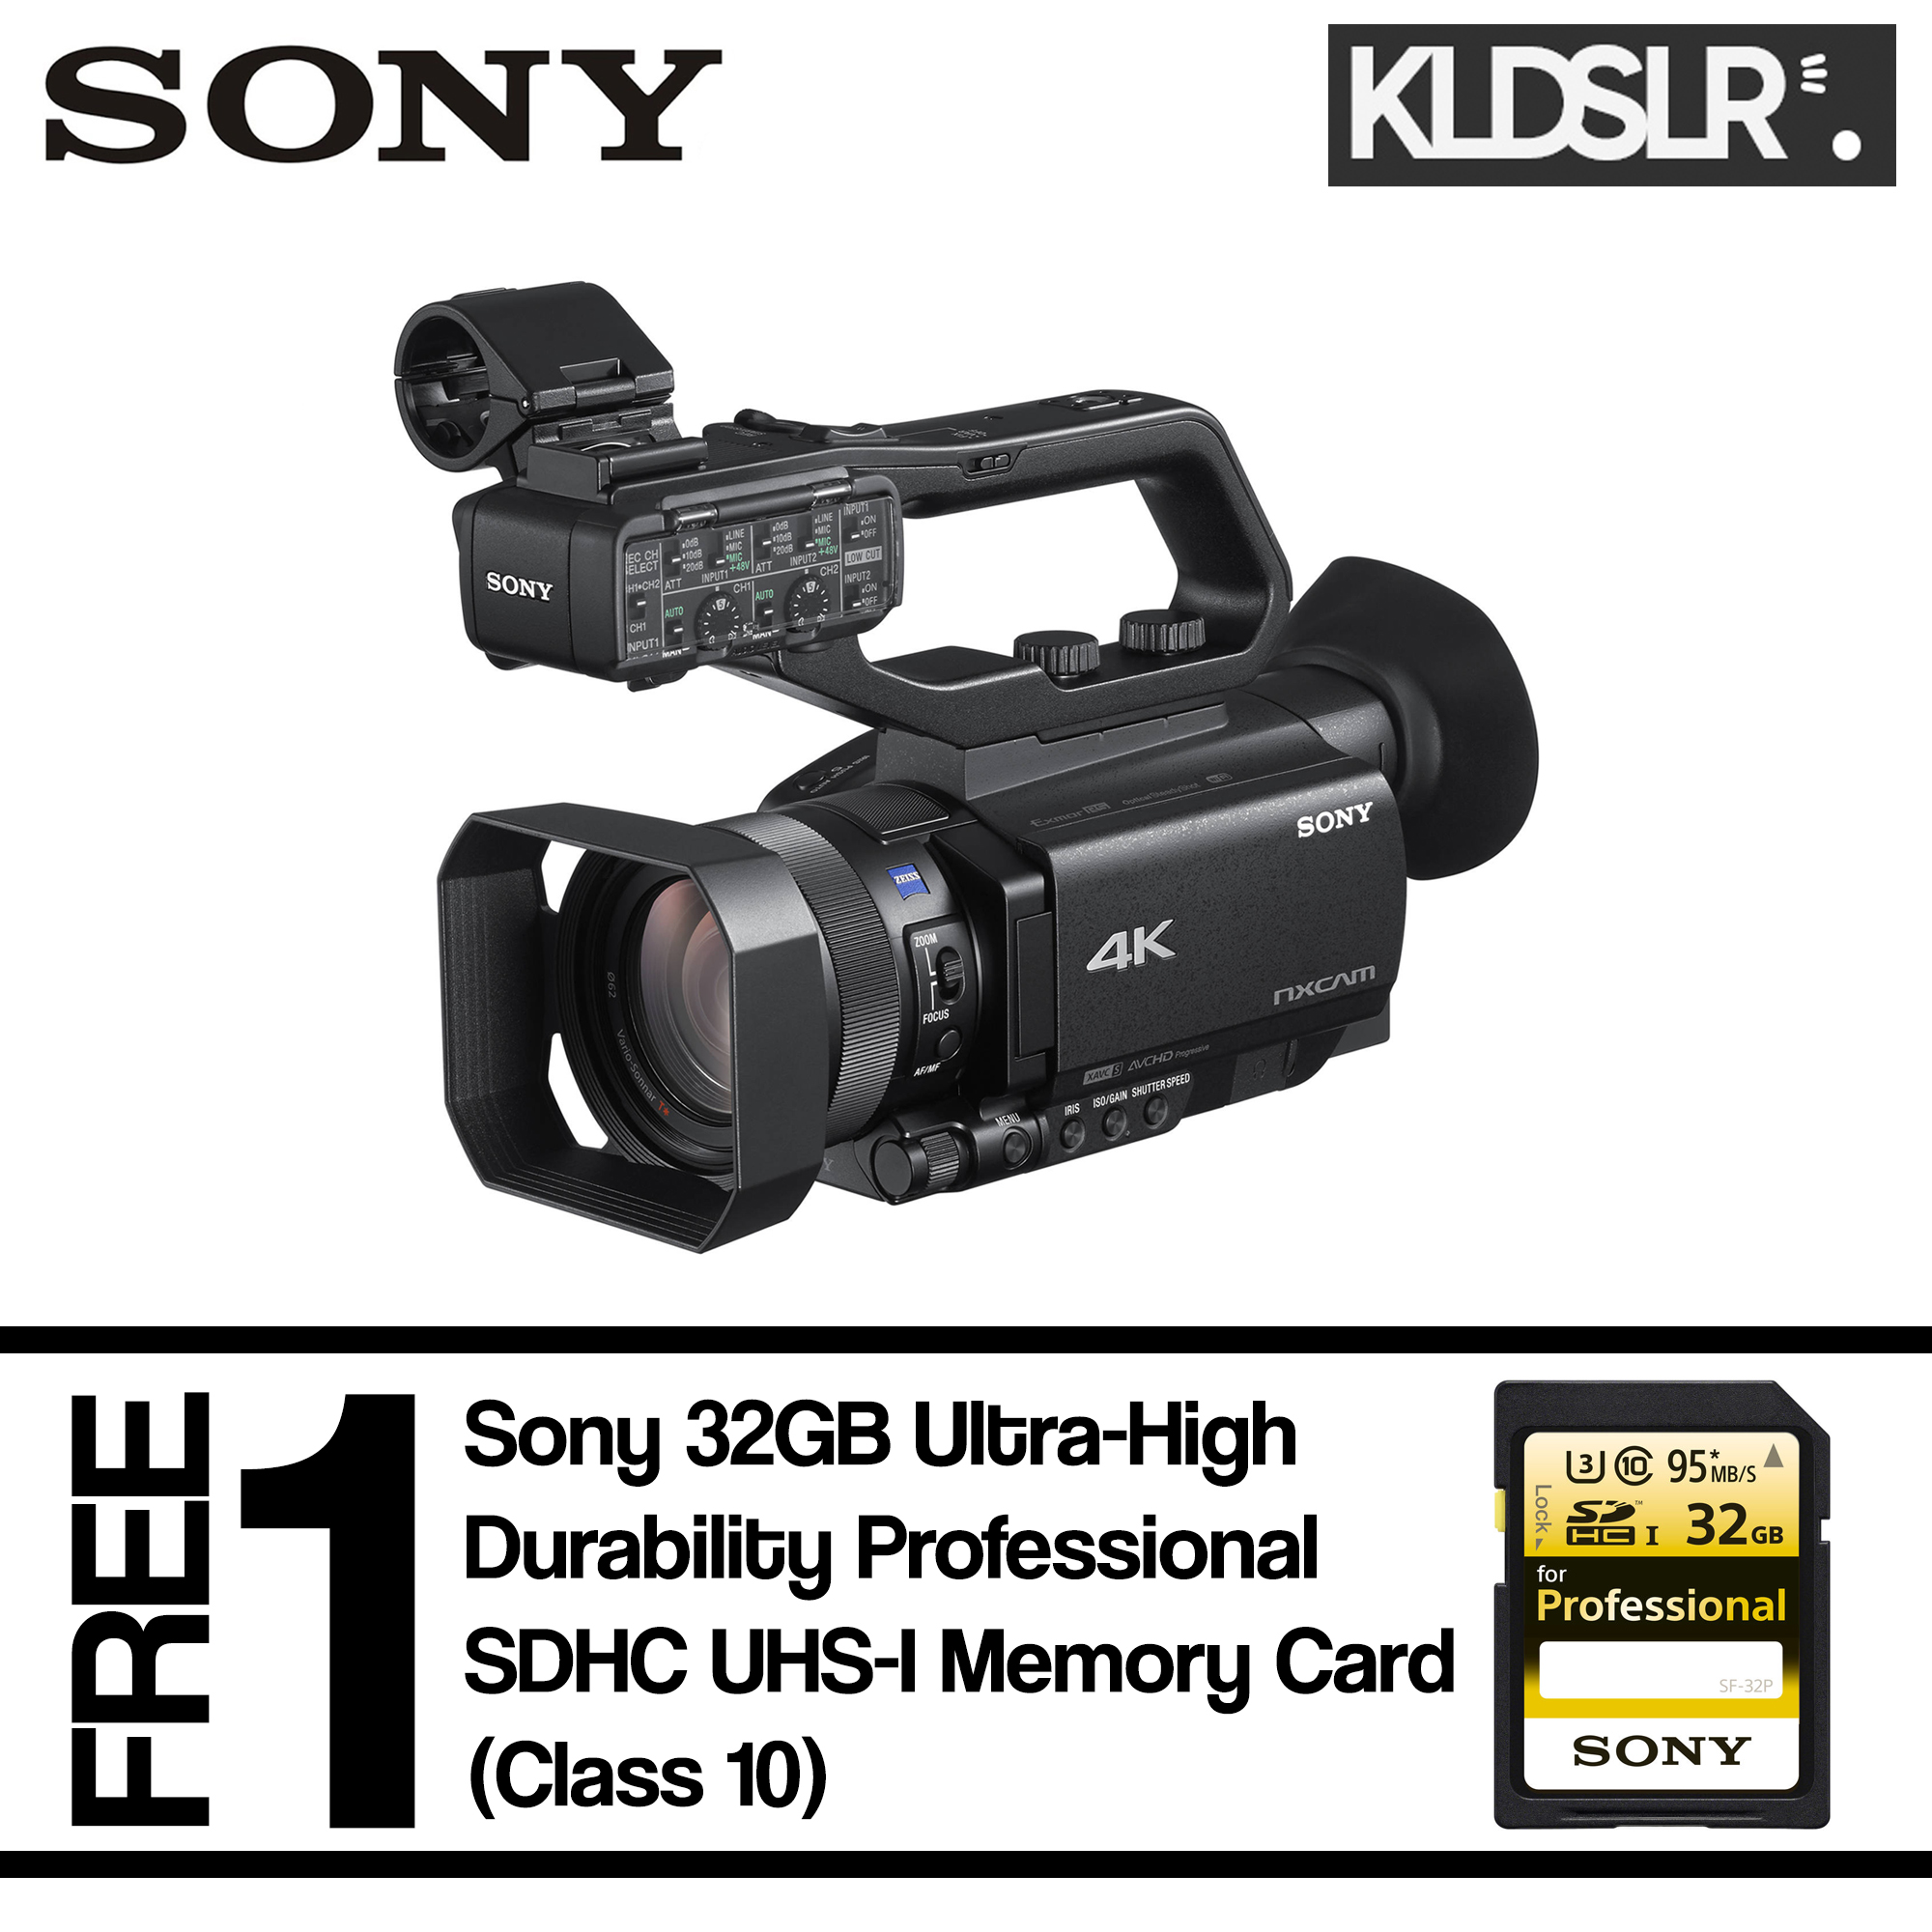 Sony HXR-NX80 Full HD XDCAM with HDR & Fast Hybrid AF (Free Sony 32GB Ultra-High Durability Professional SDHC UHS-I Memory Card)